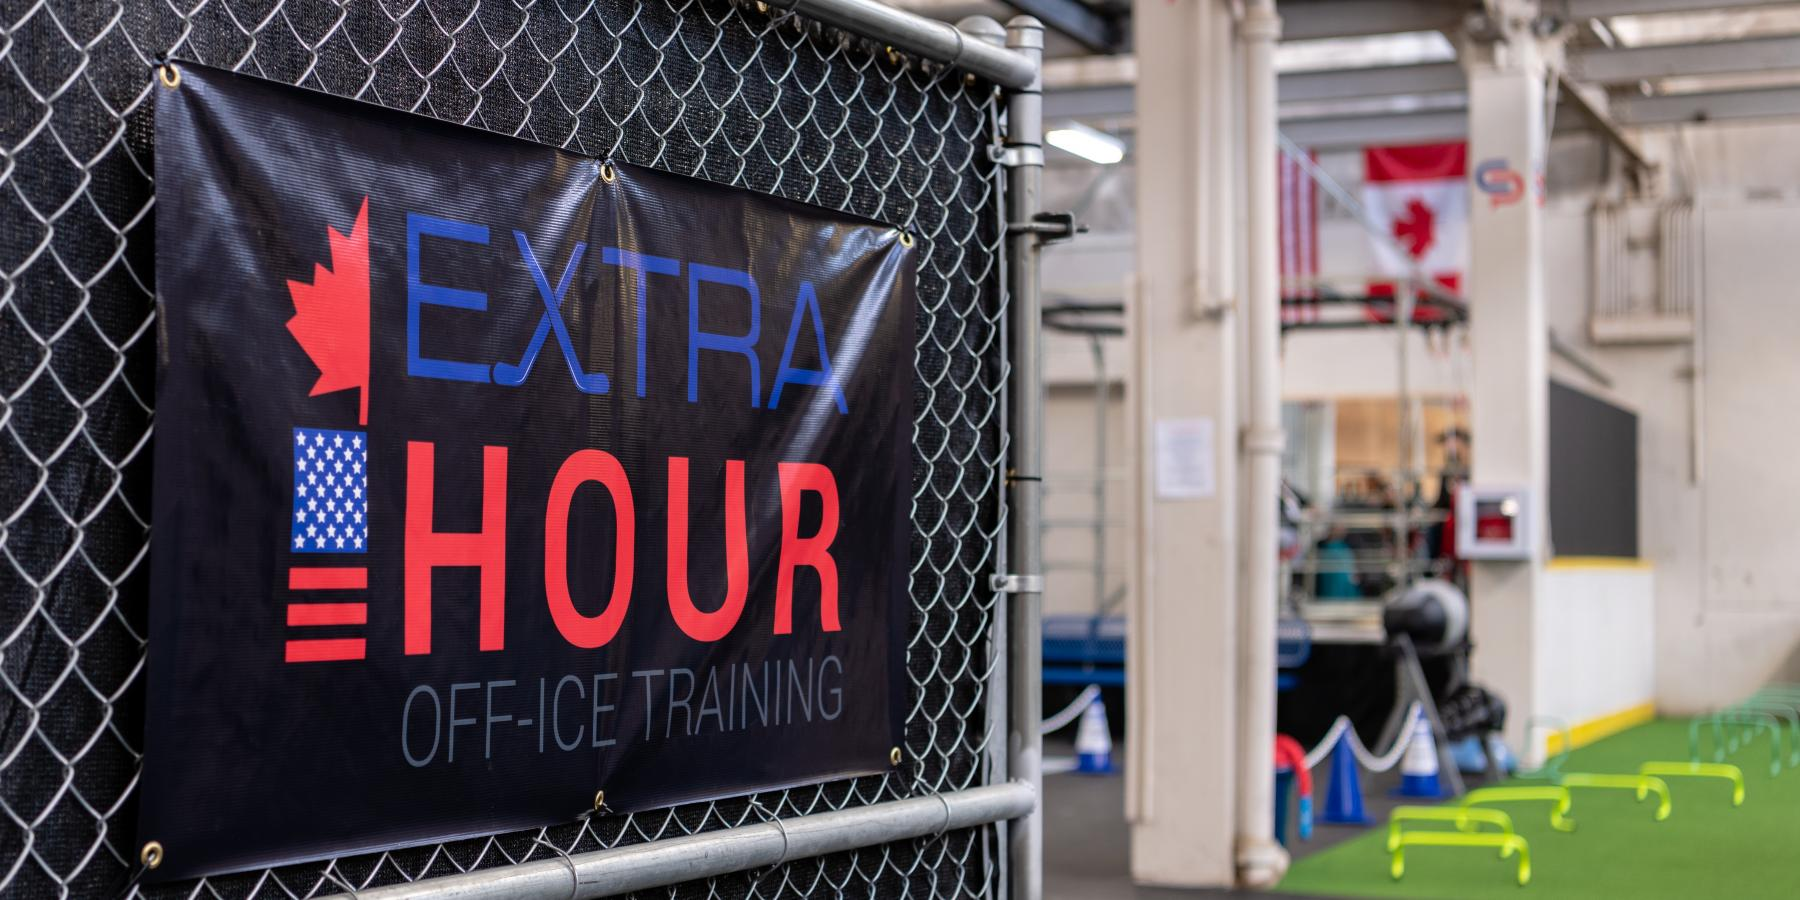 Extra Hour Off-Ice Hockey Training facility entrance